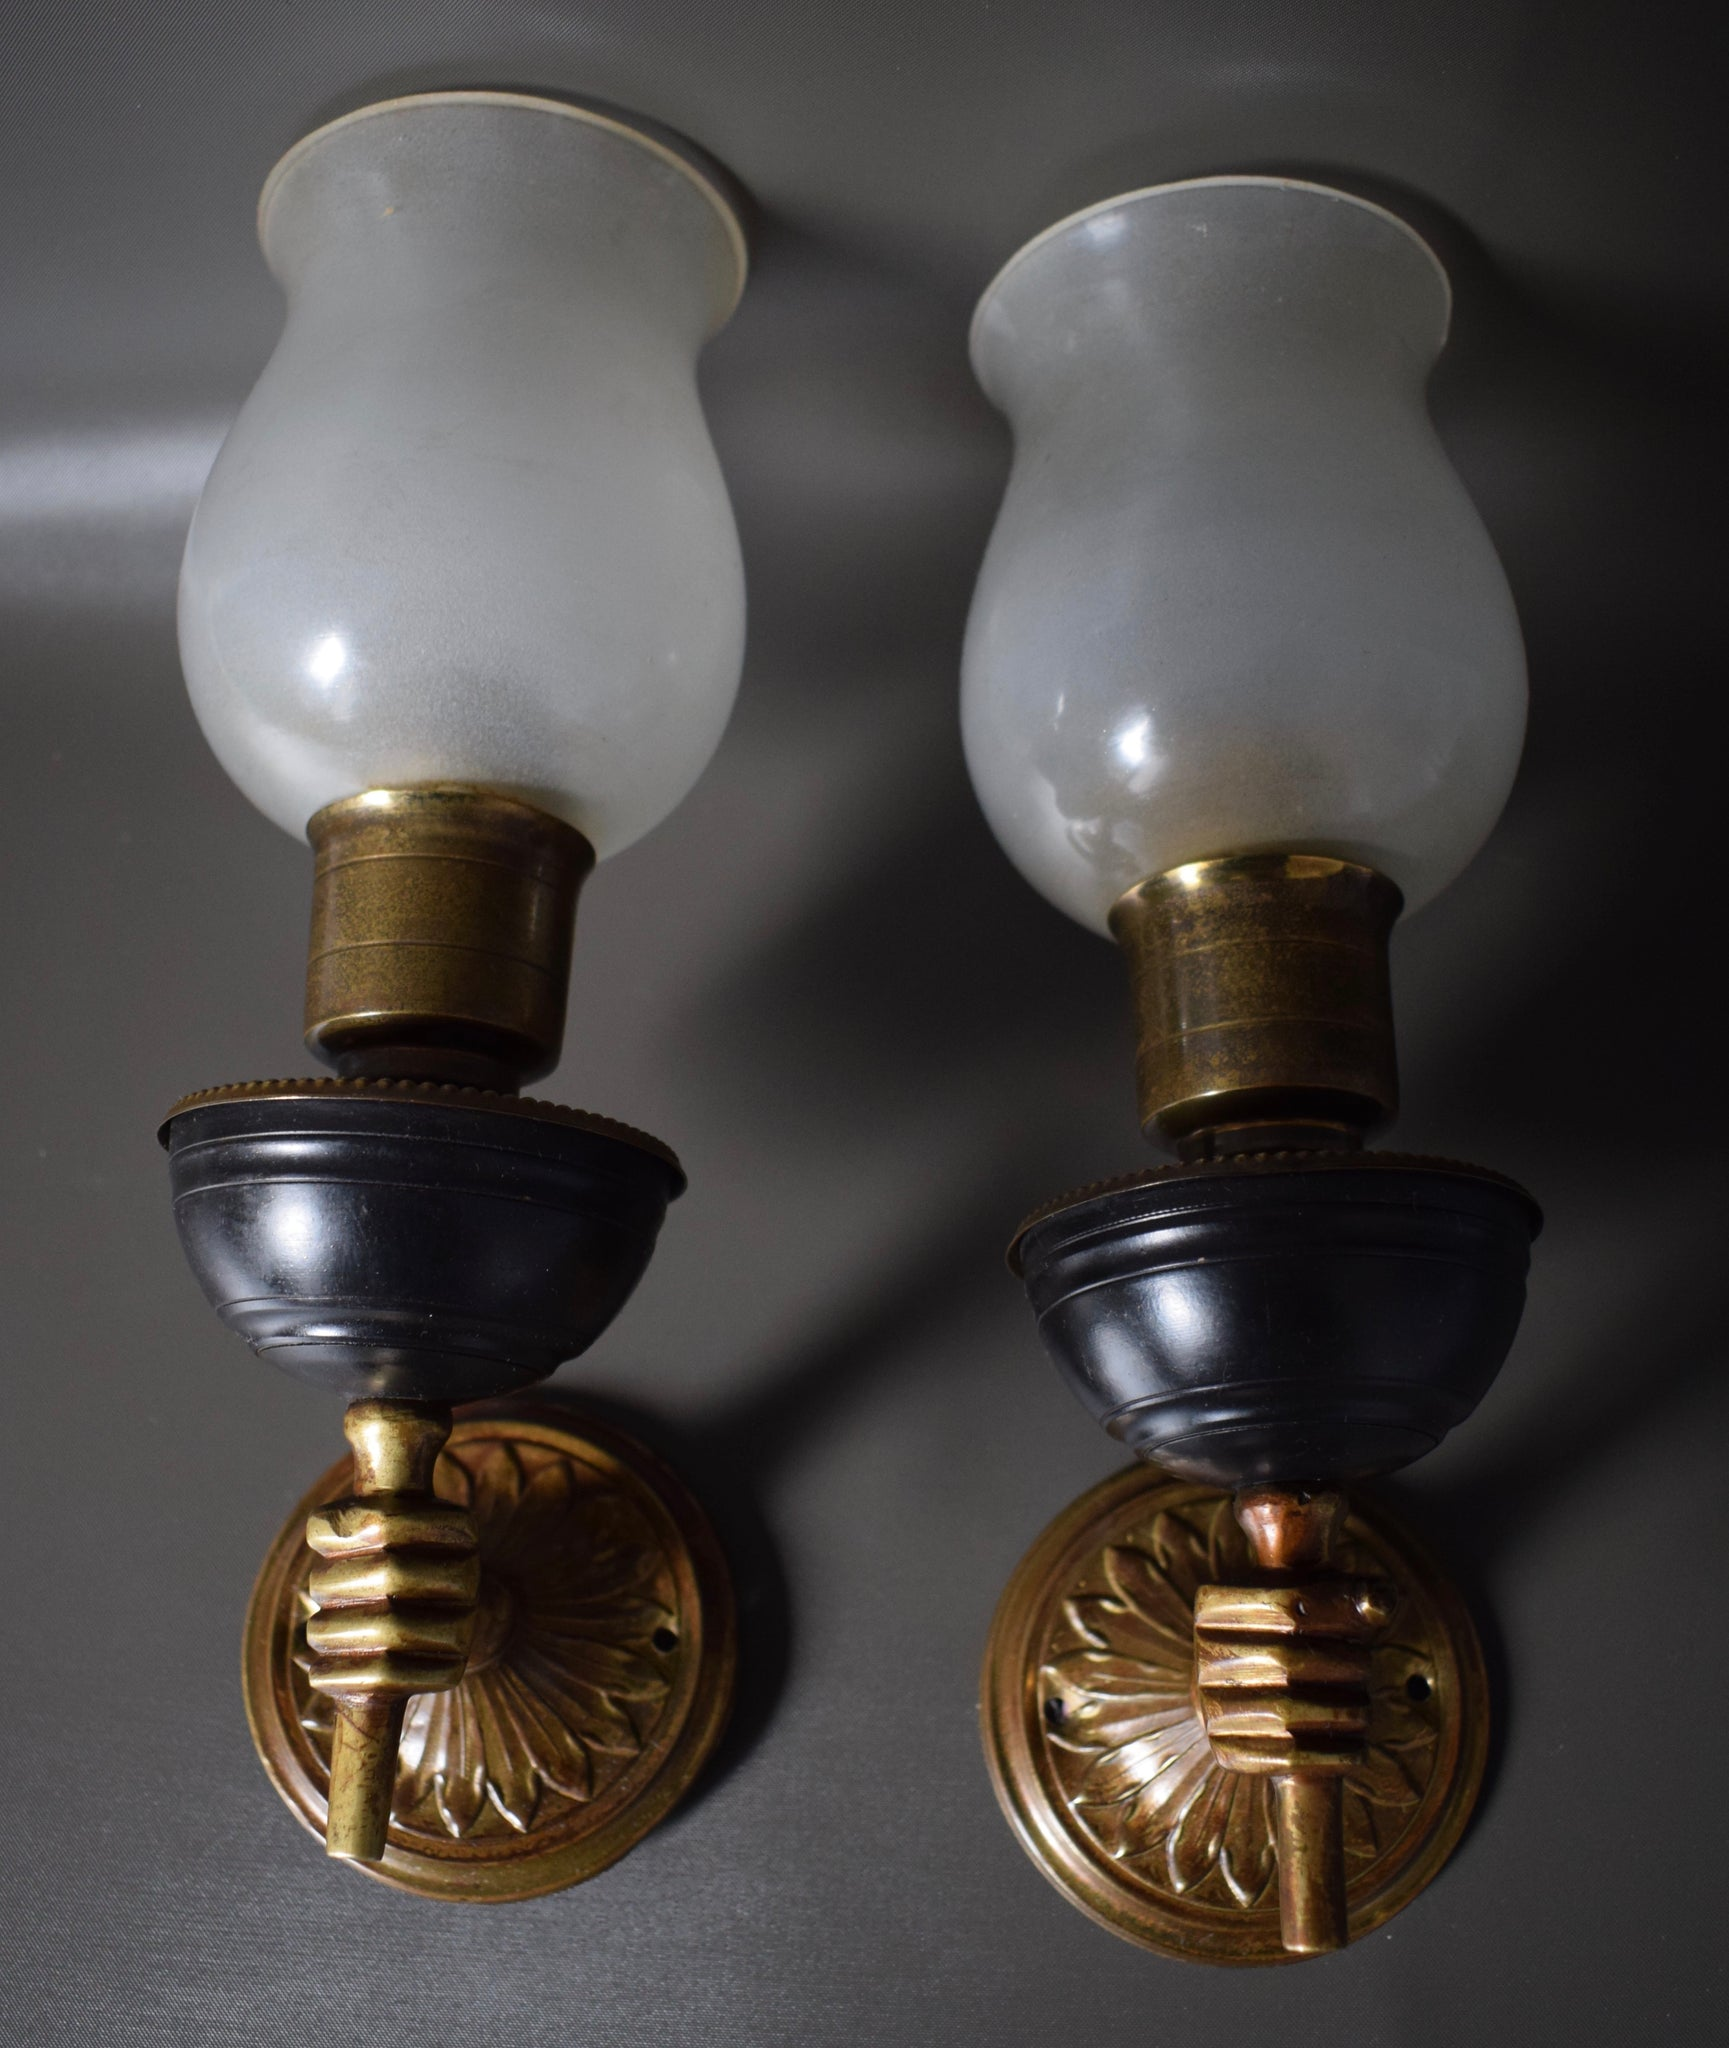 Pair of Hand Wall Sconces - Charmantiques